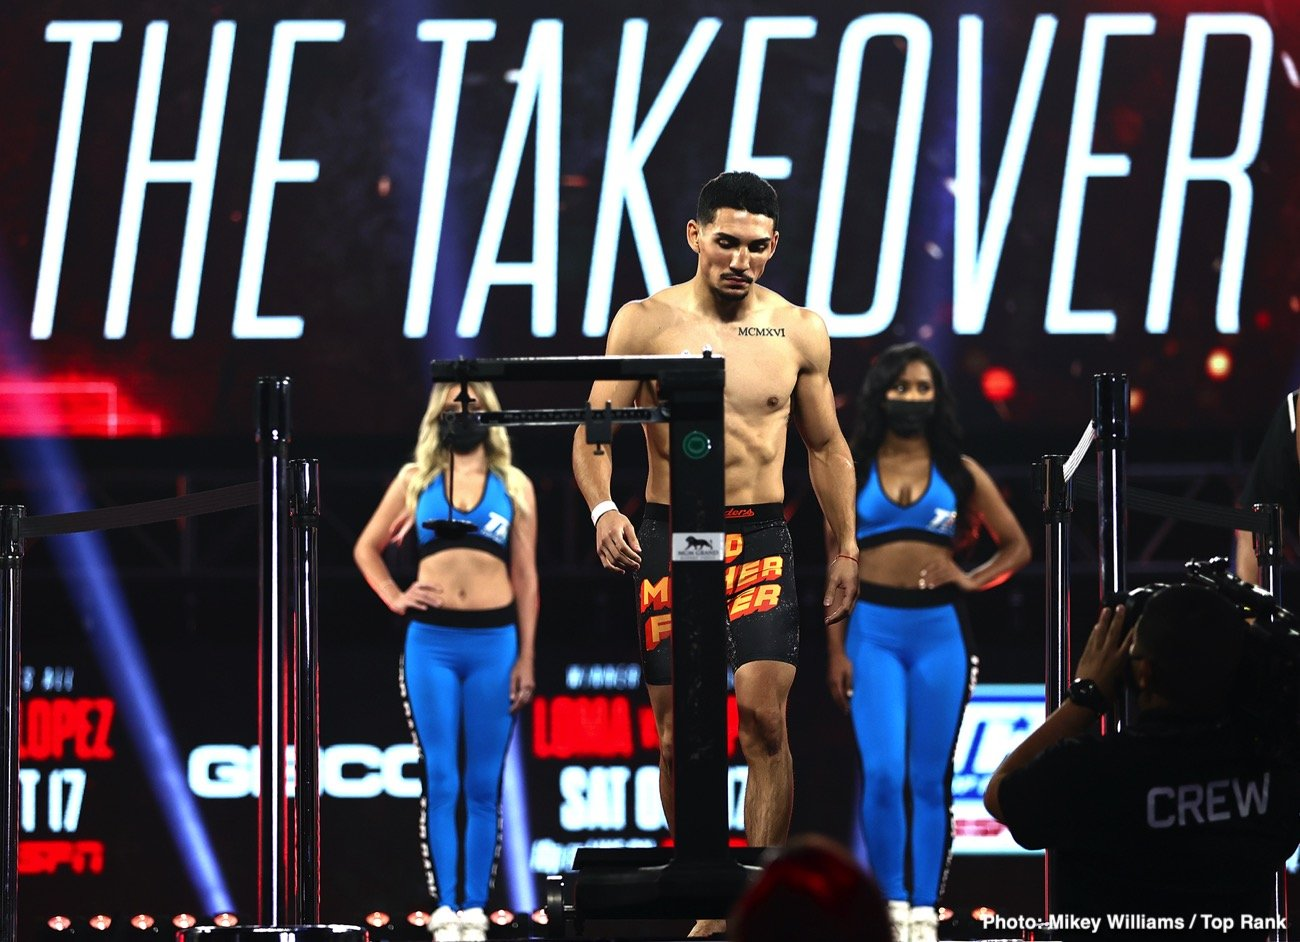 Teofimo Lopez, Vasiliy Lomachenko - Saturday night kicks off a stretch of fights scheduled for the Fall that should definitely make up for all the action fans have missed due to the coronavirus.